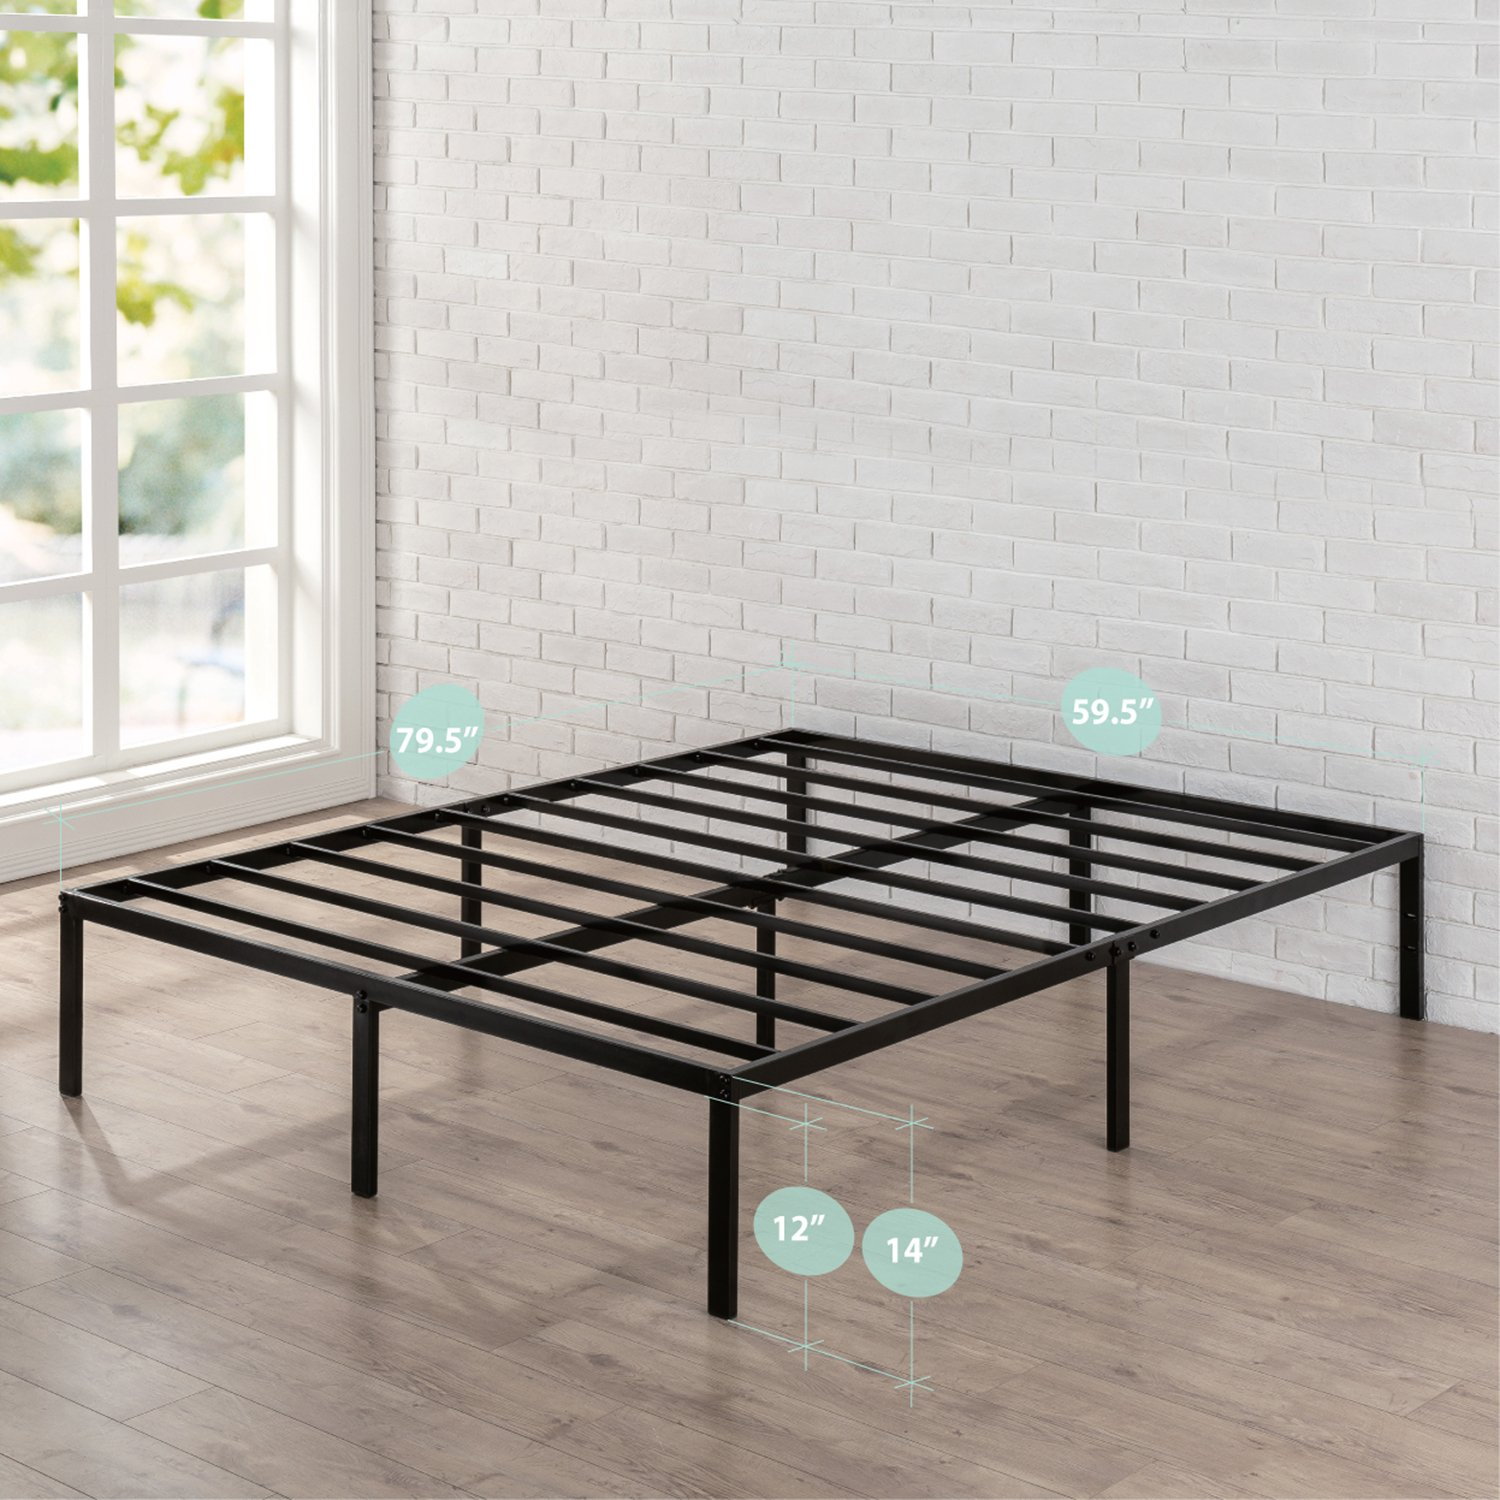 Zinus 14 Inch Classic Metal Platform Bed Frame with Steel Slat Support, Mattress Foundation, Queen by Zinus (Image #1)